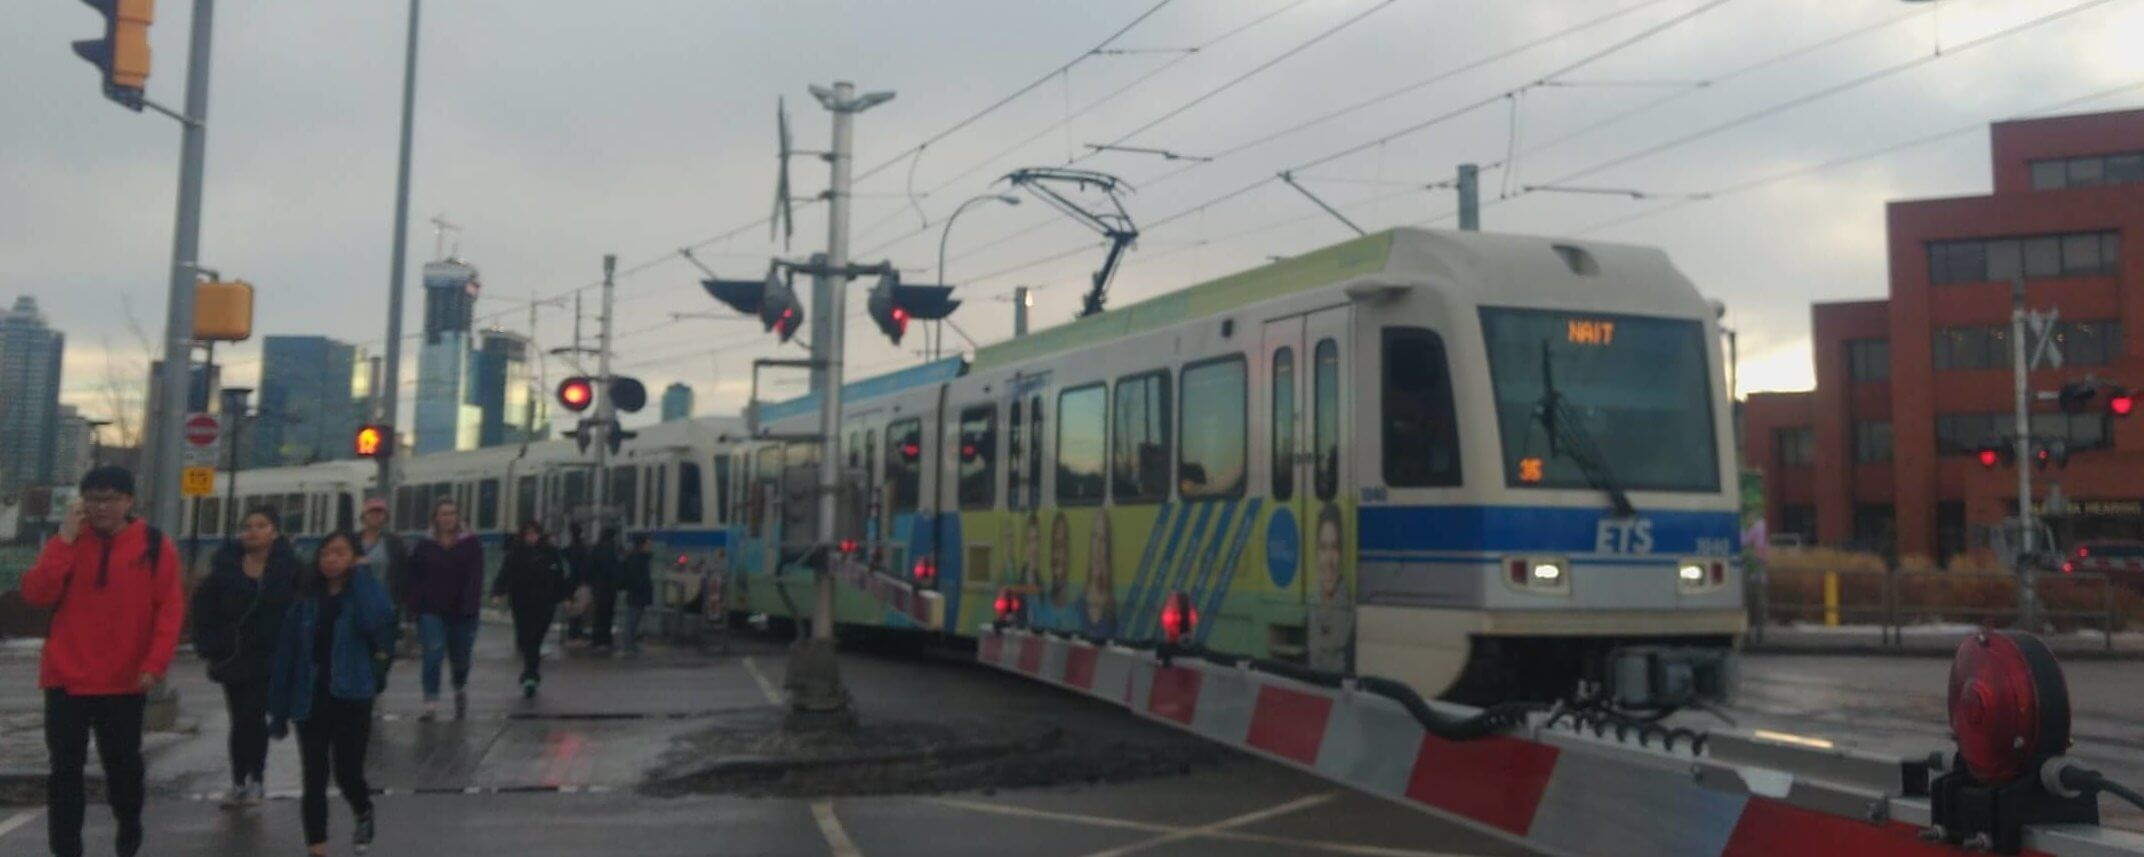 Edmonton LRT traffic modelling shows why surface LRT would have been a mistake for Surrey